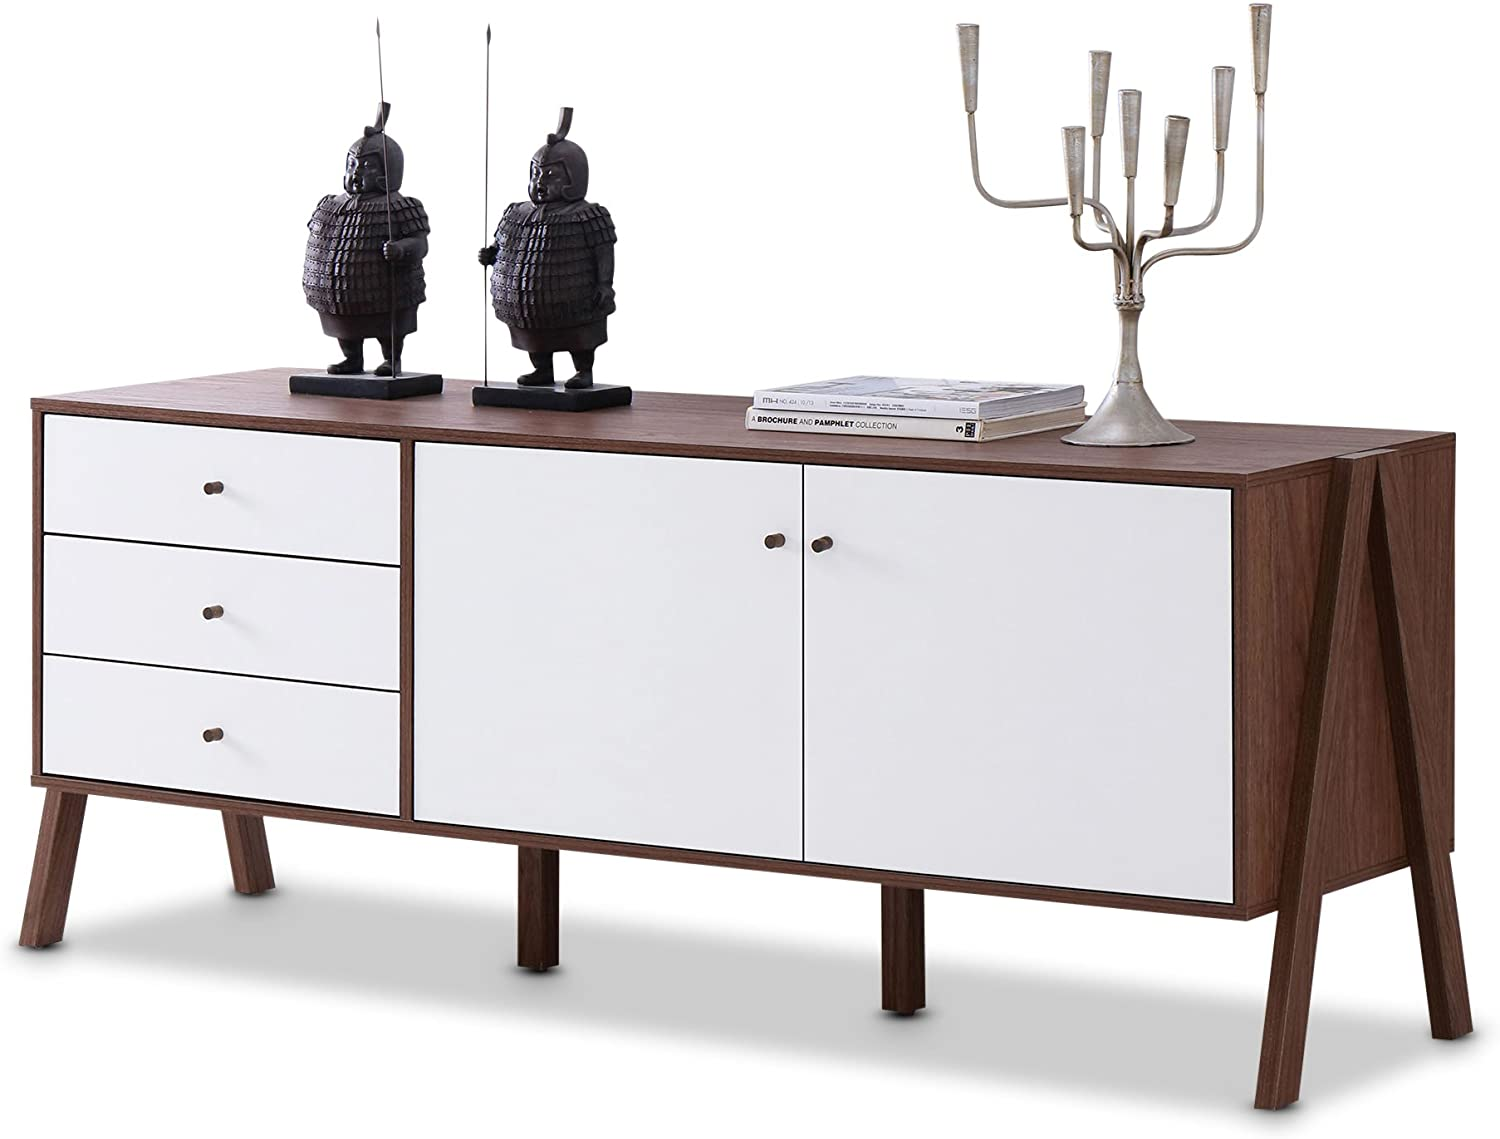 Baxton Furniture Studios Harlow Mid-Century Modern Scandinavian Style Wood Sideboard, White and Walnut